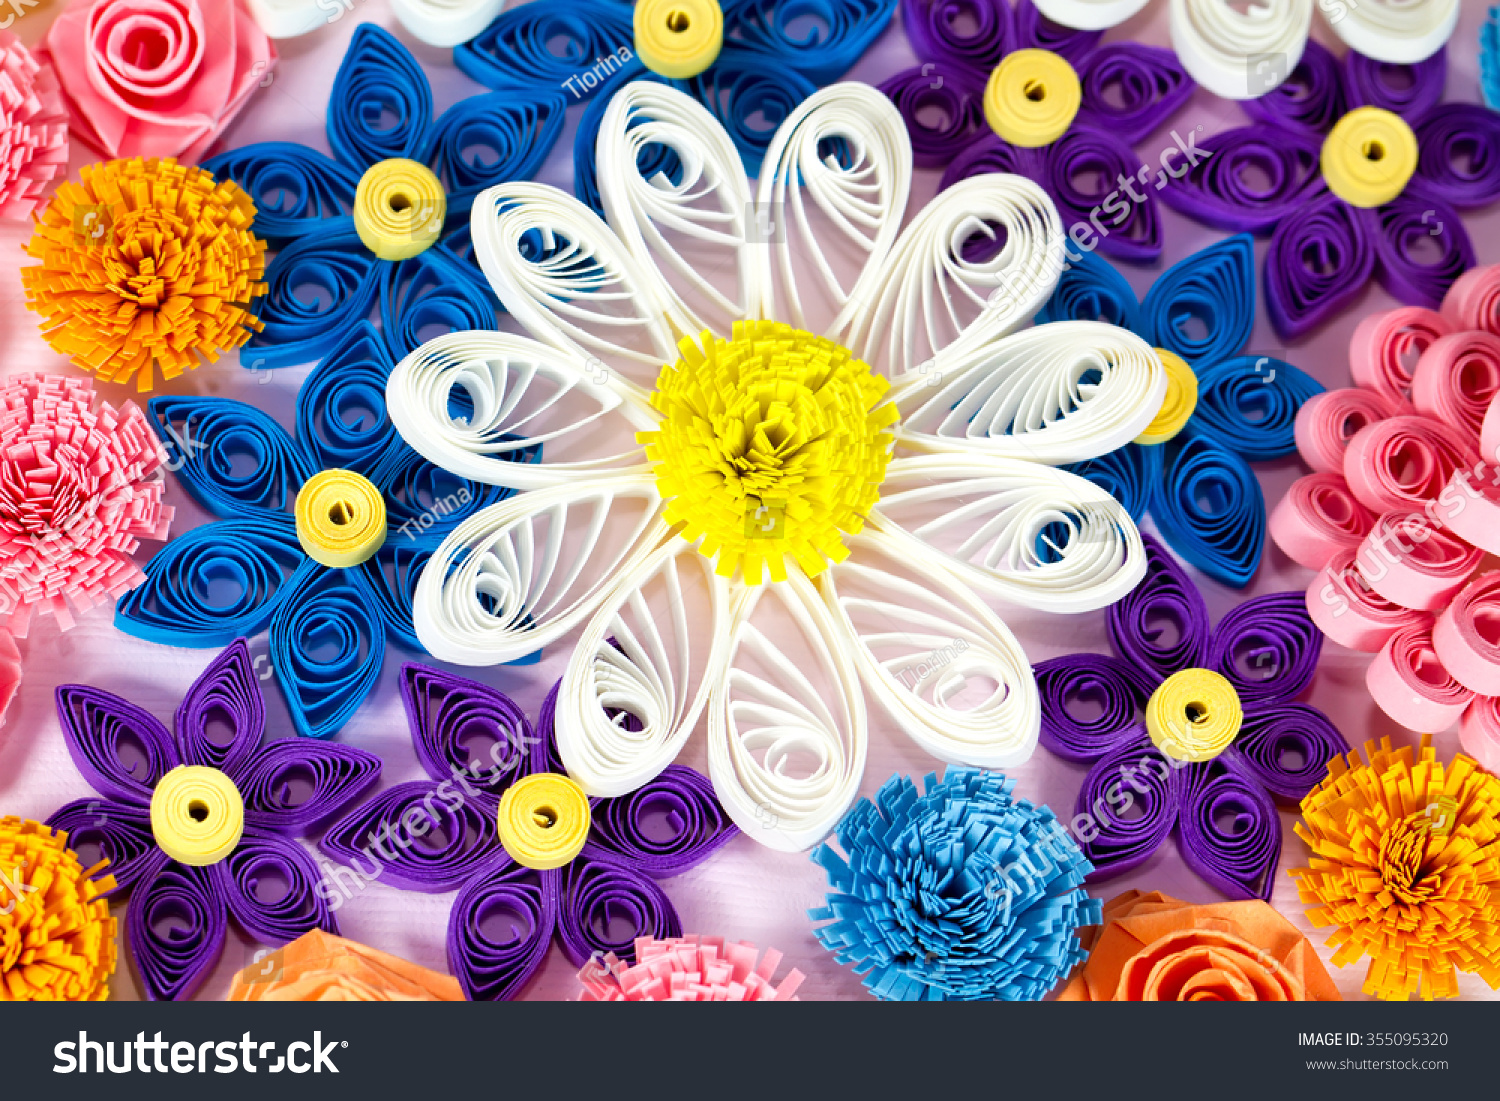 Colorful Paper Quilling Flowers Macro Stock Photo Image Royalty